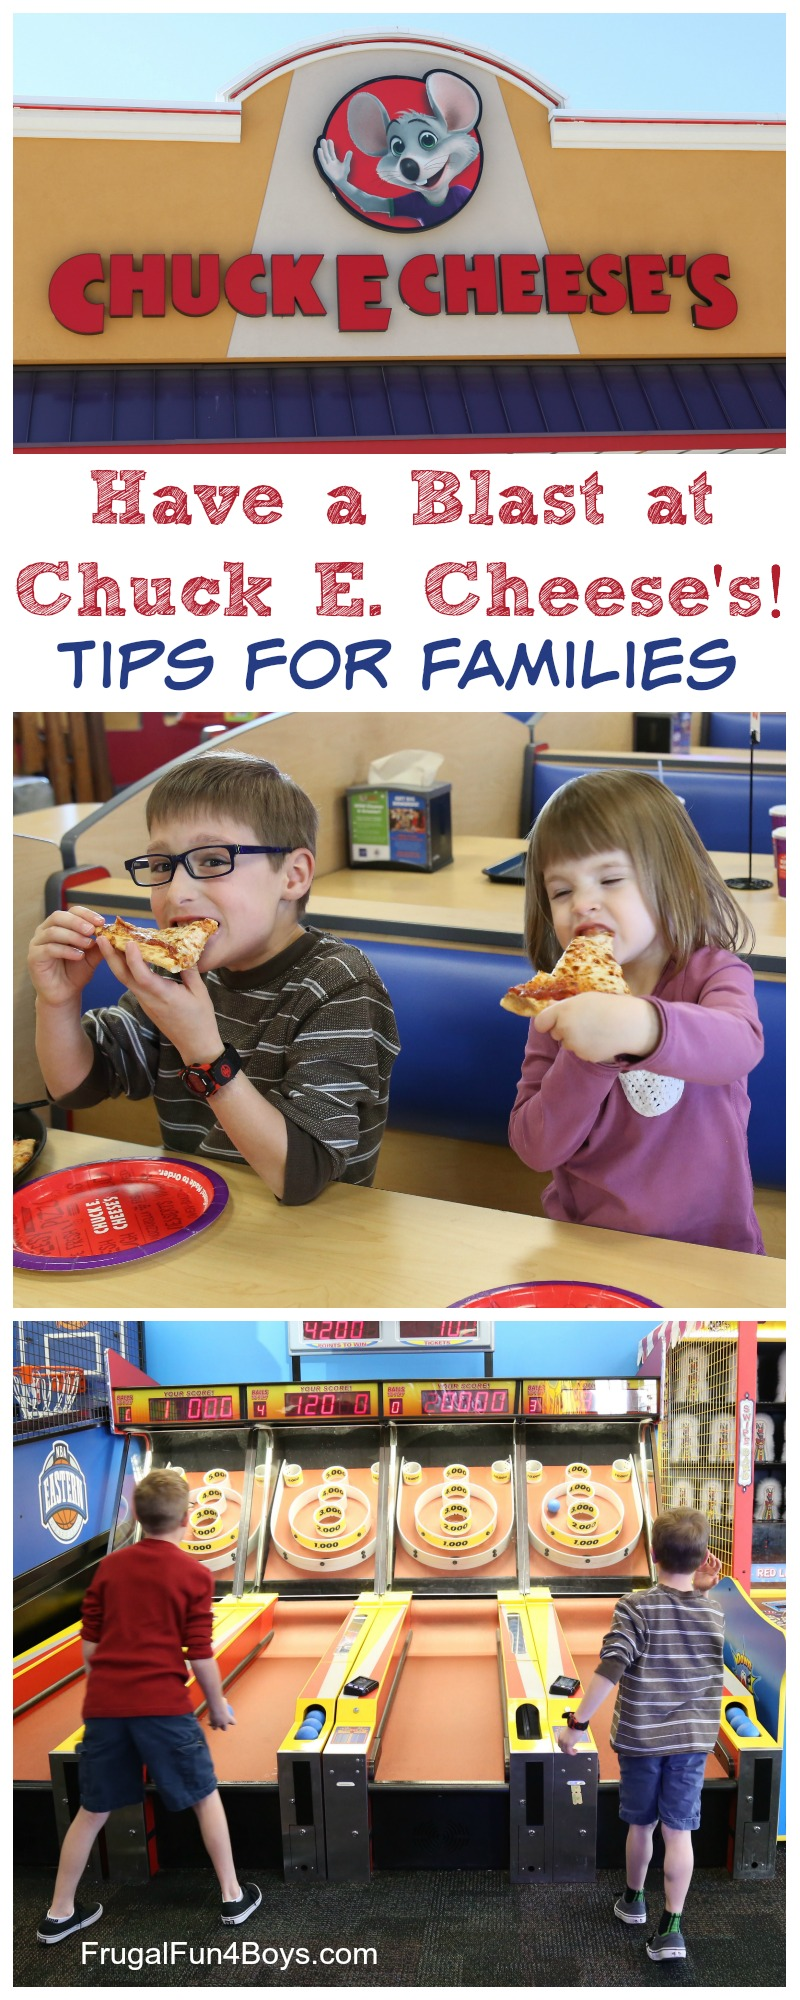 Kids Play Safe at Chuck E. Cheese's!